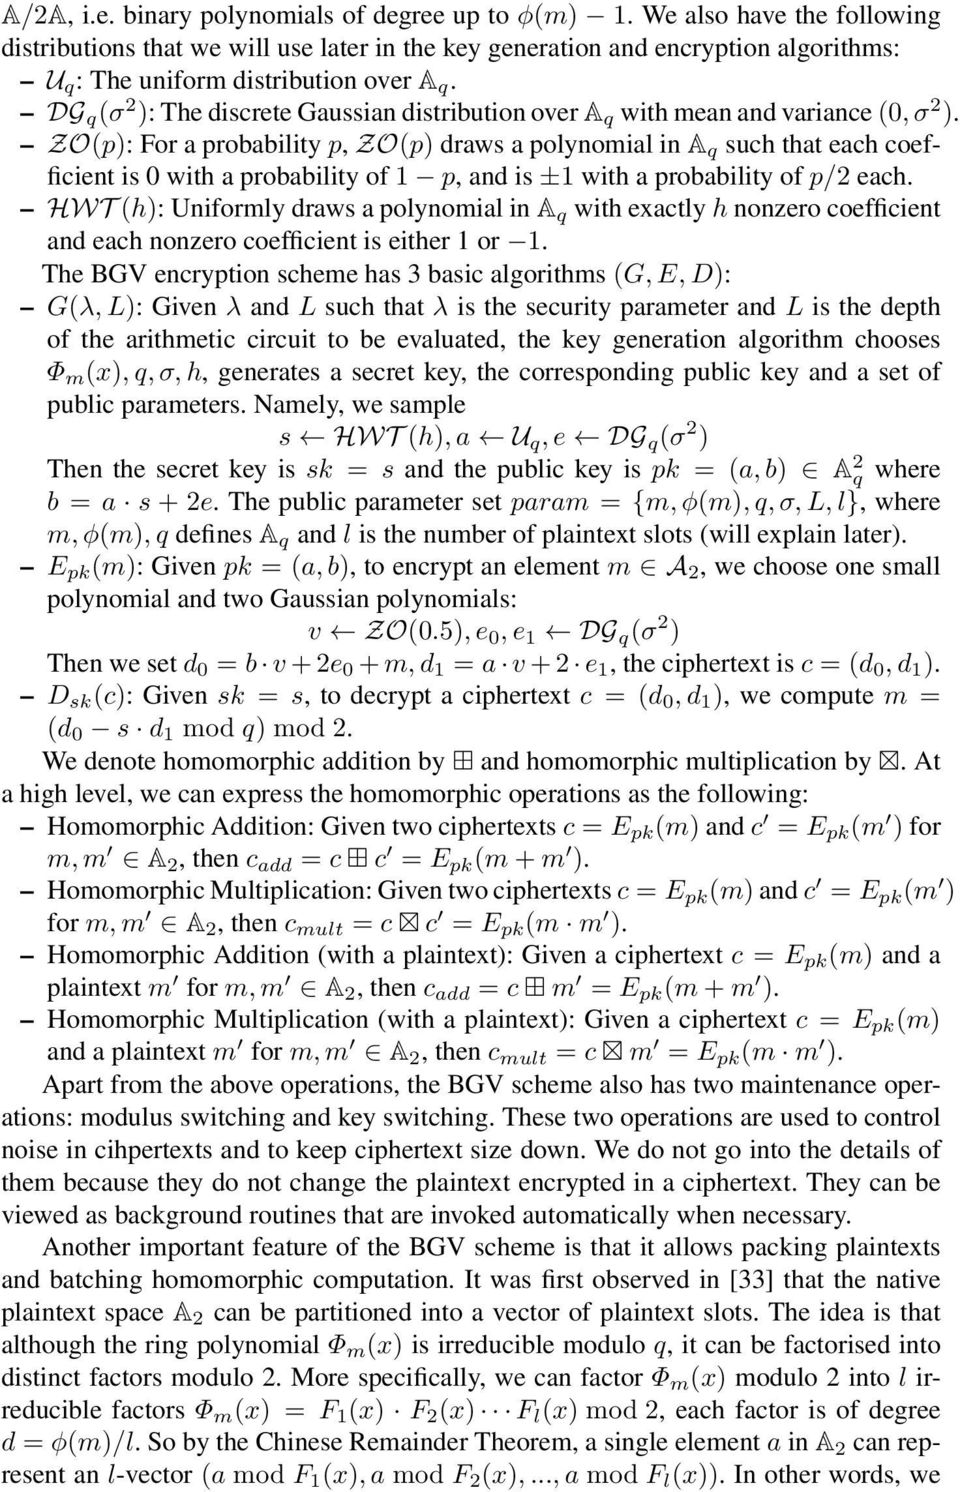 DG q (σ 2 ): The discrete Gaussian distribution over A q with mean and variance (0, σ 2 ).